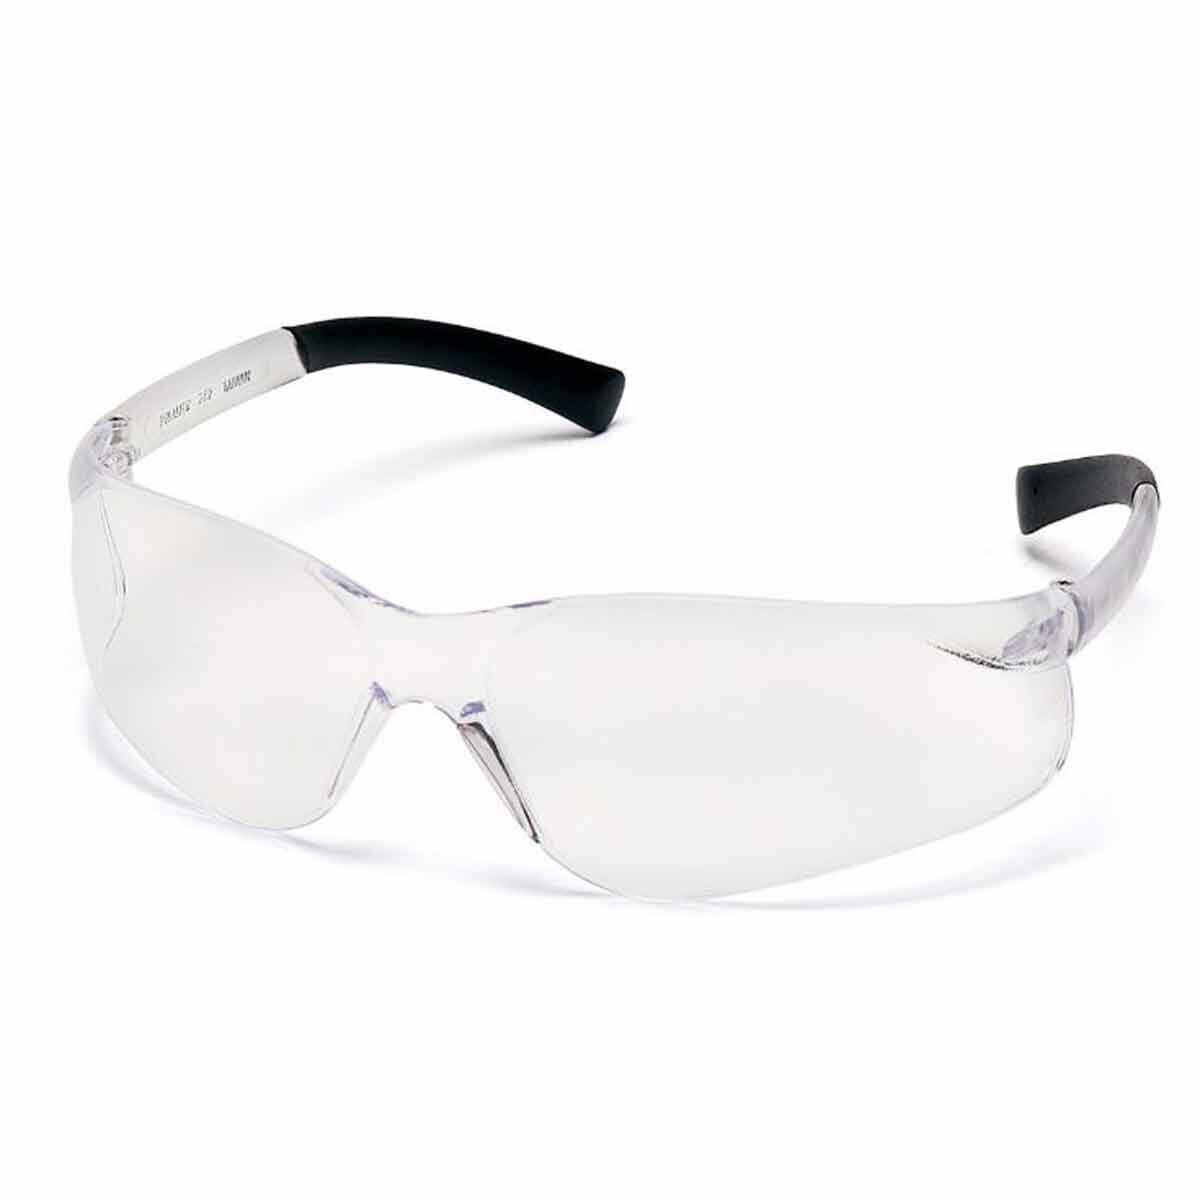 Pyramex Ztek Anti-Fog Eye Protection Safety Glasses